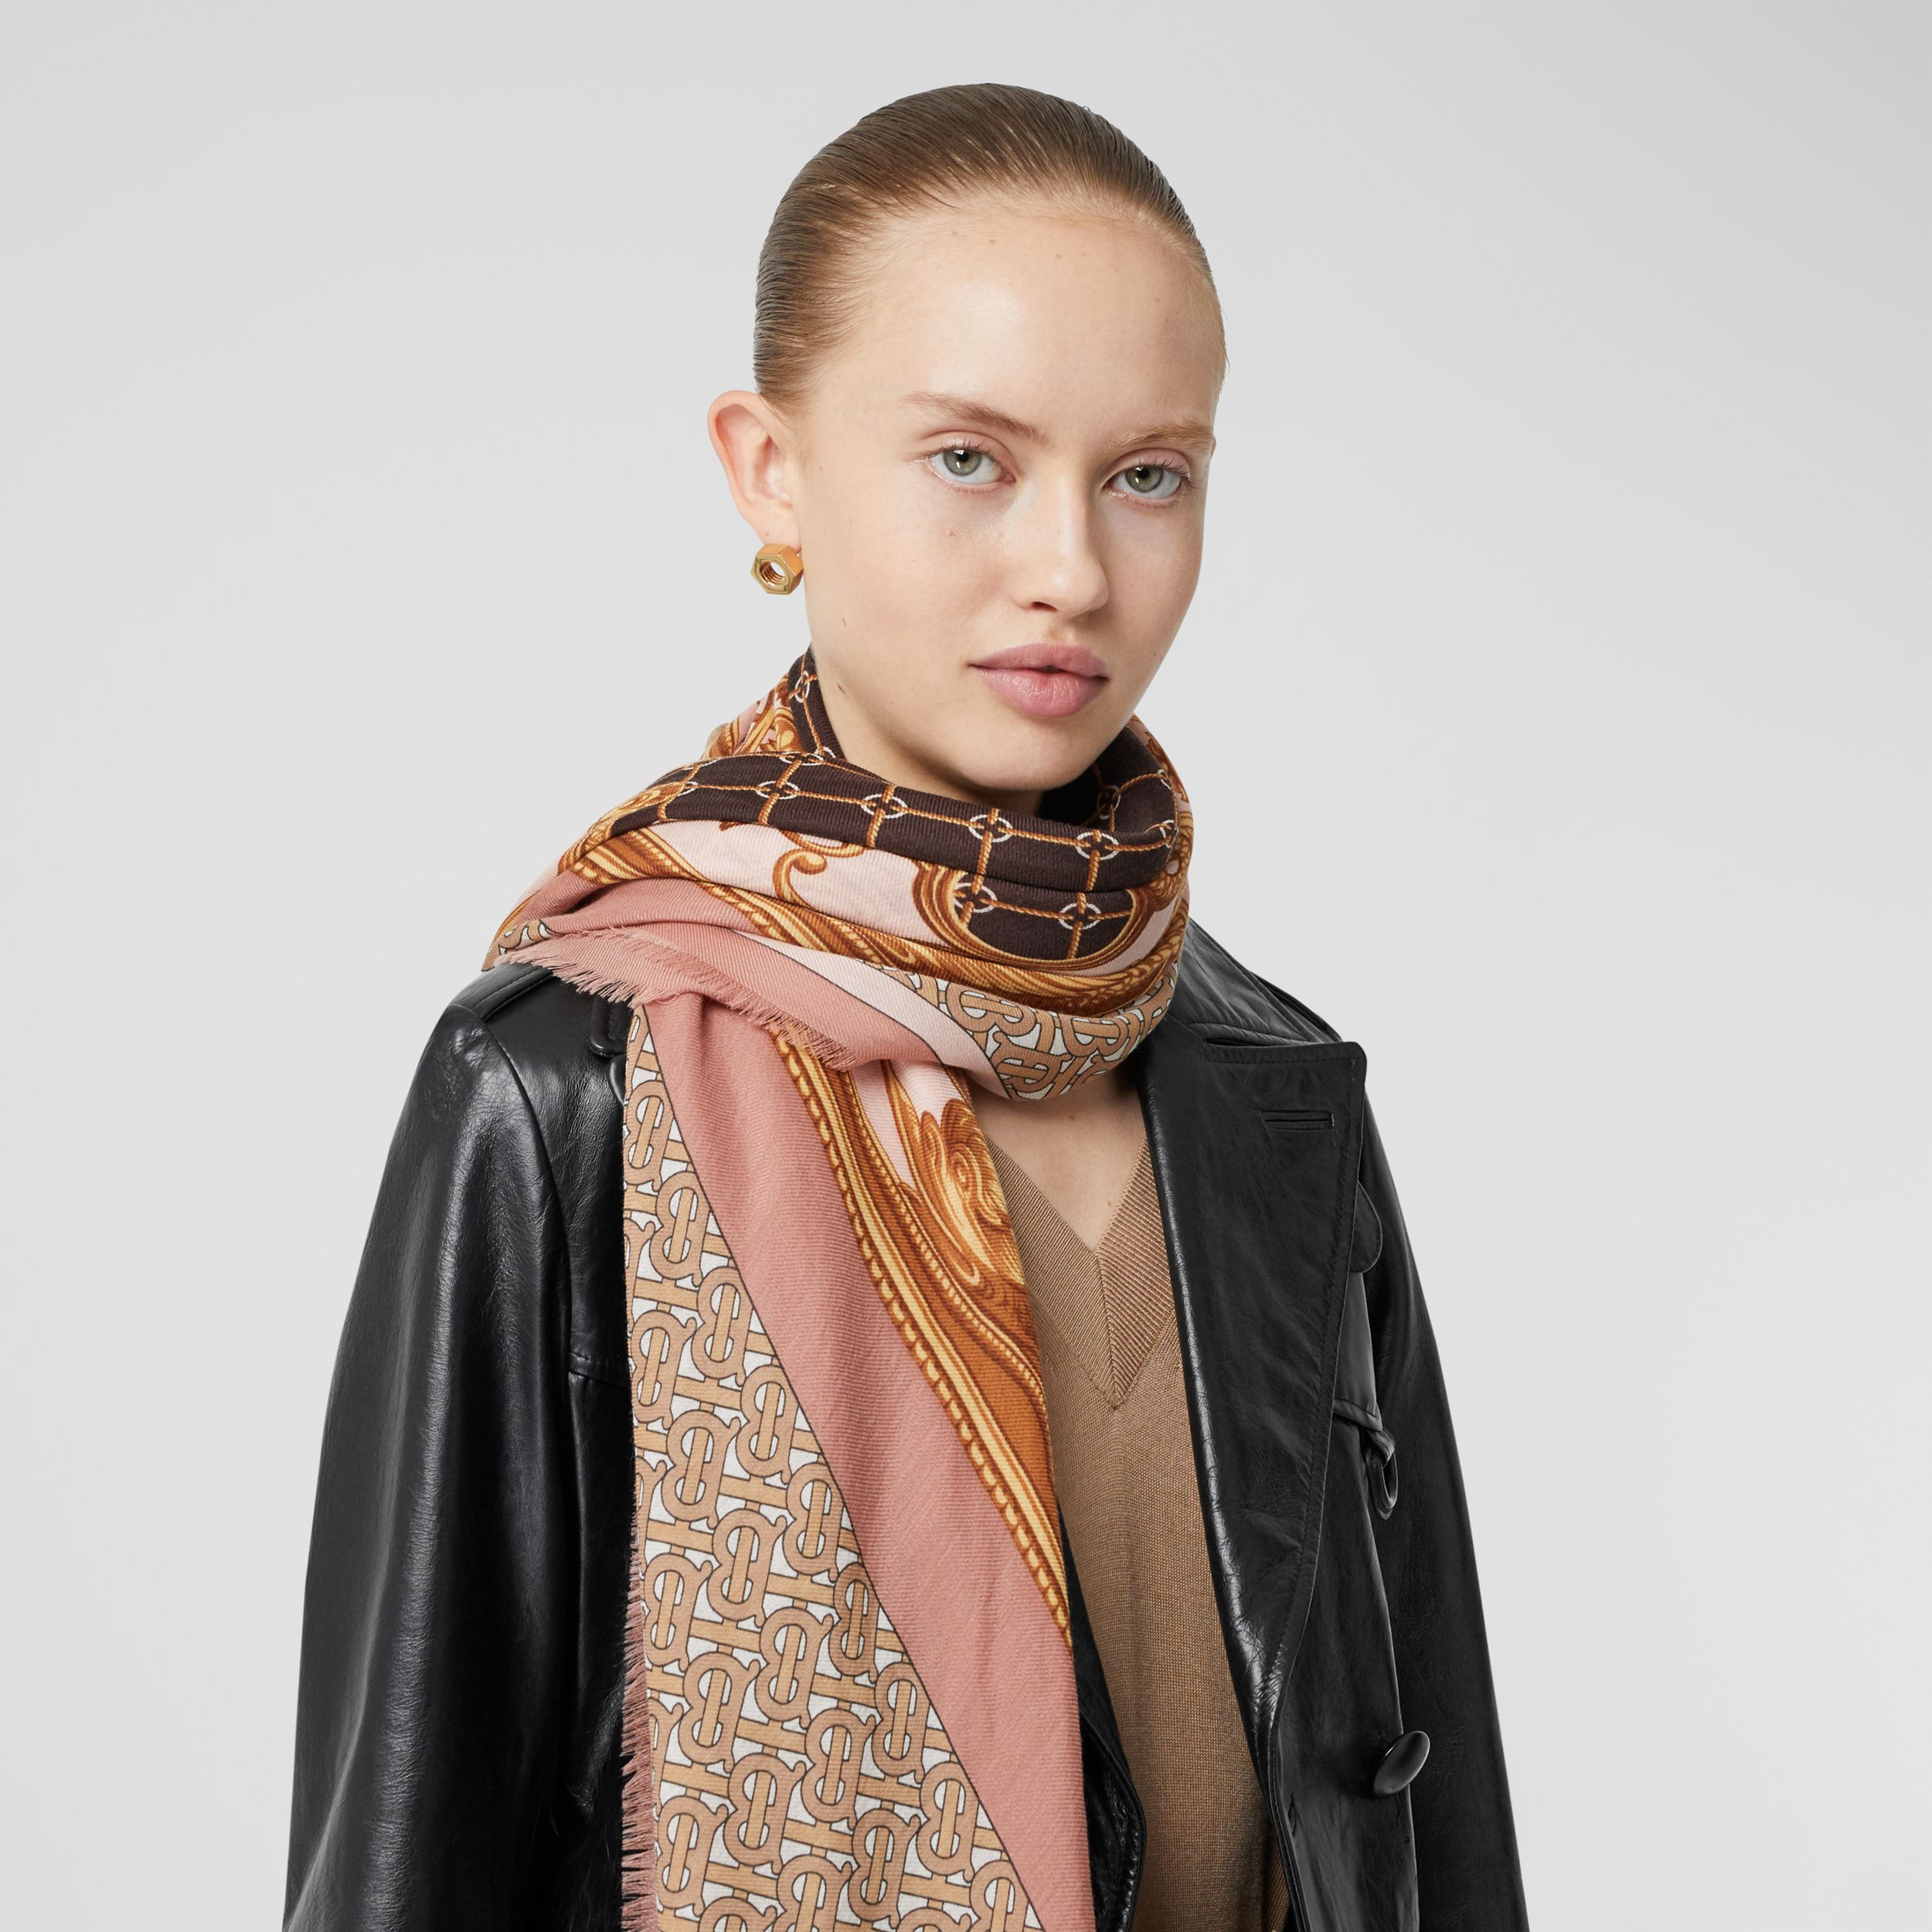 Archive Scarf Print Cashmere Large Square Scarf in Pale Blush | Burberry - 3